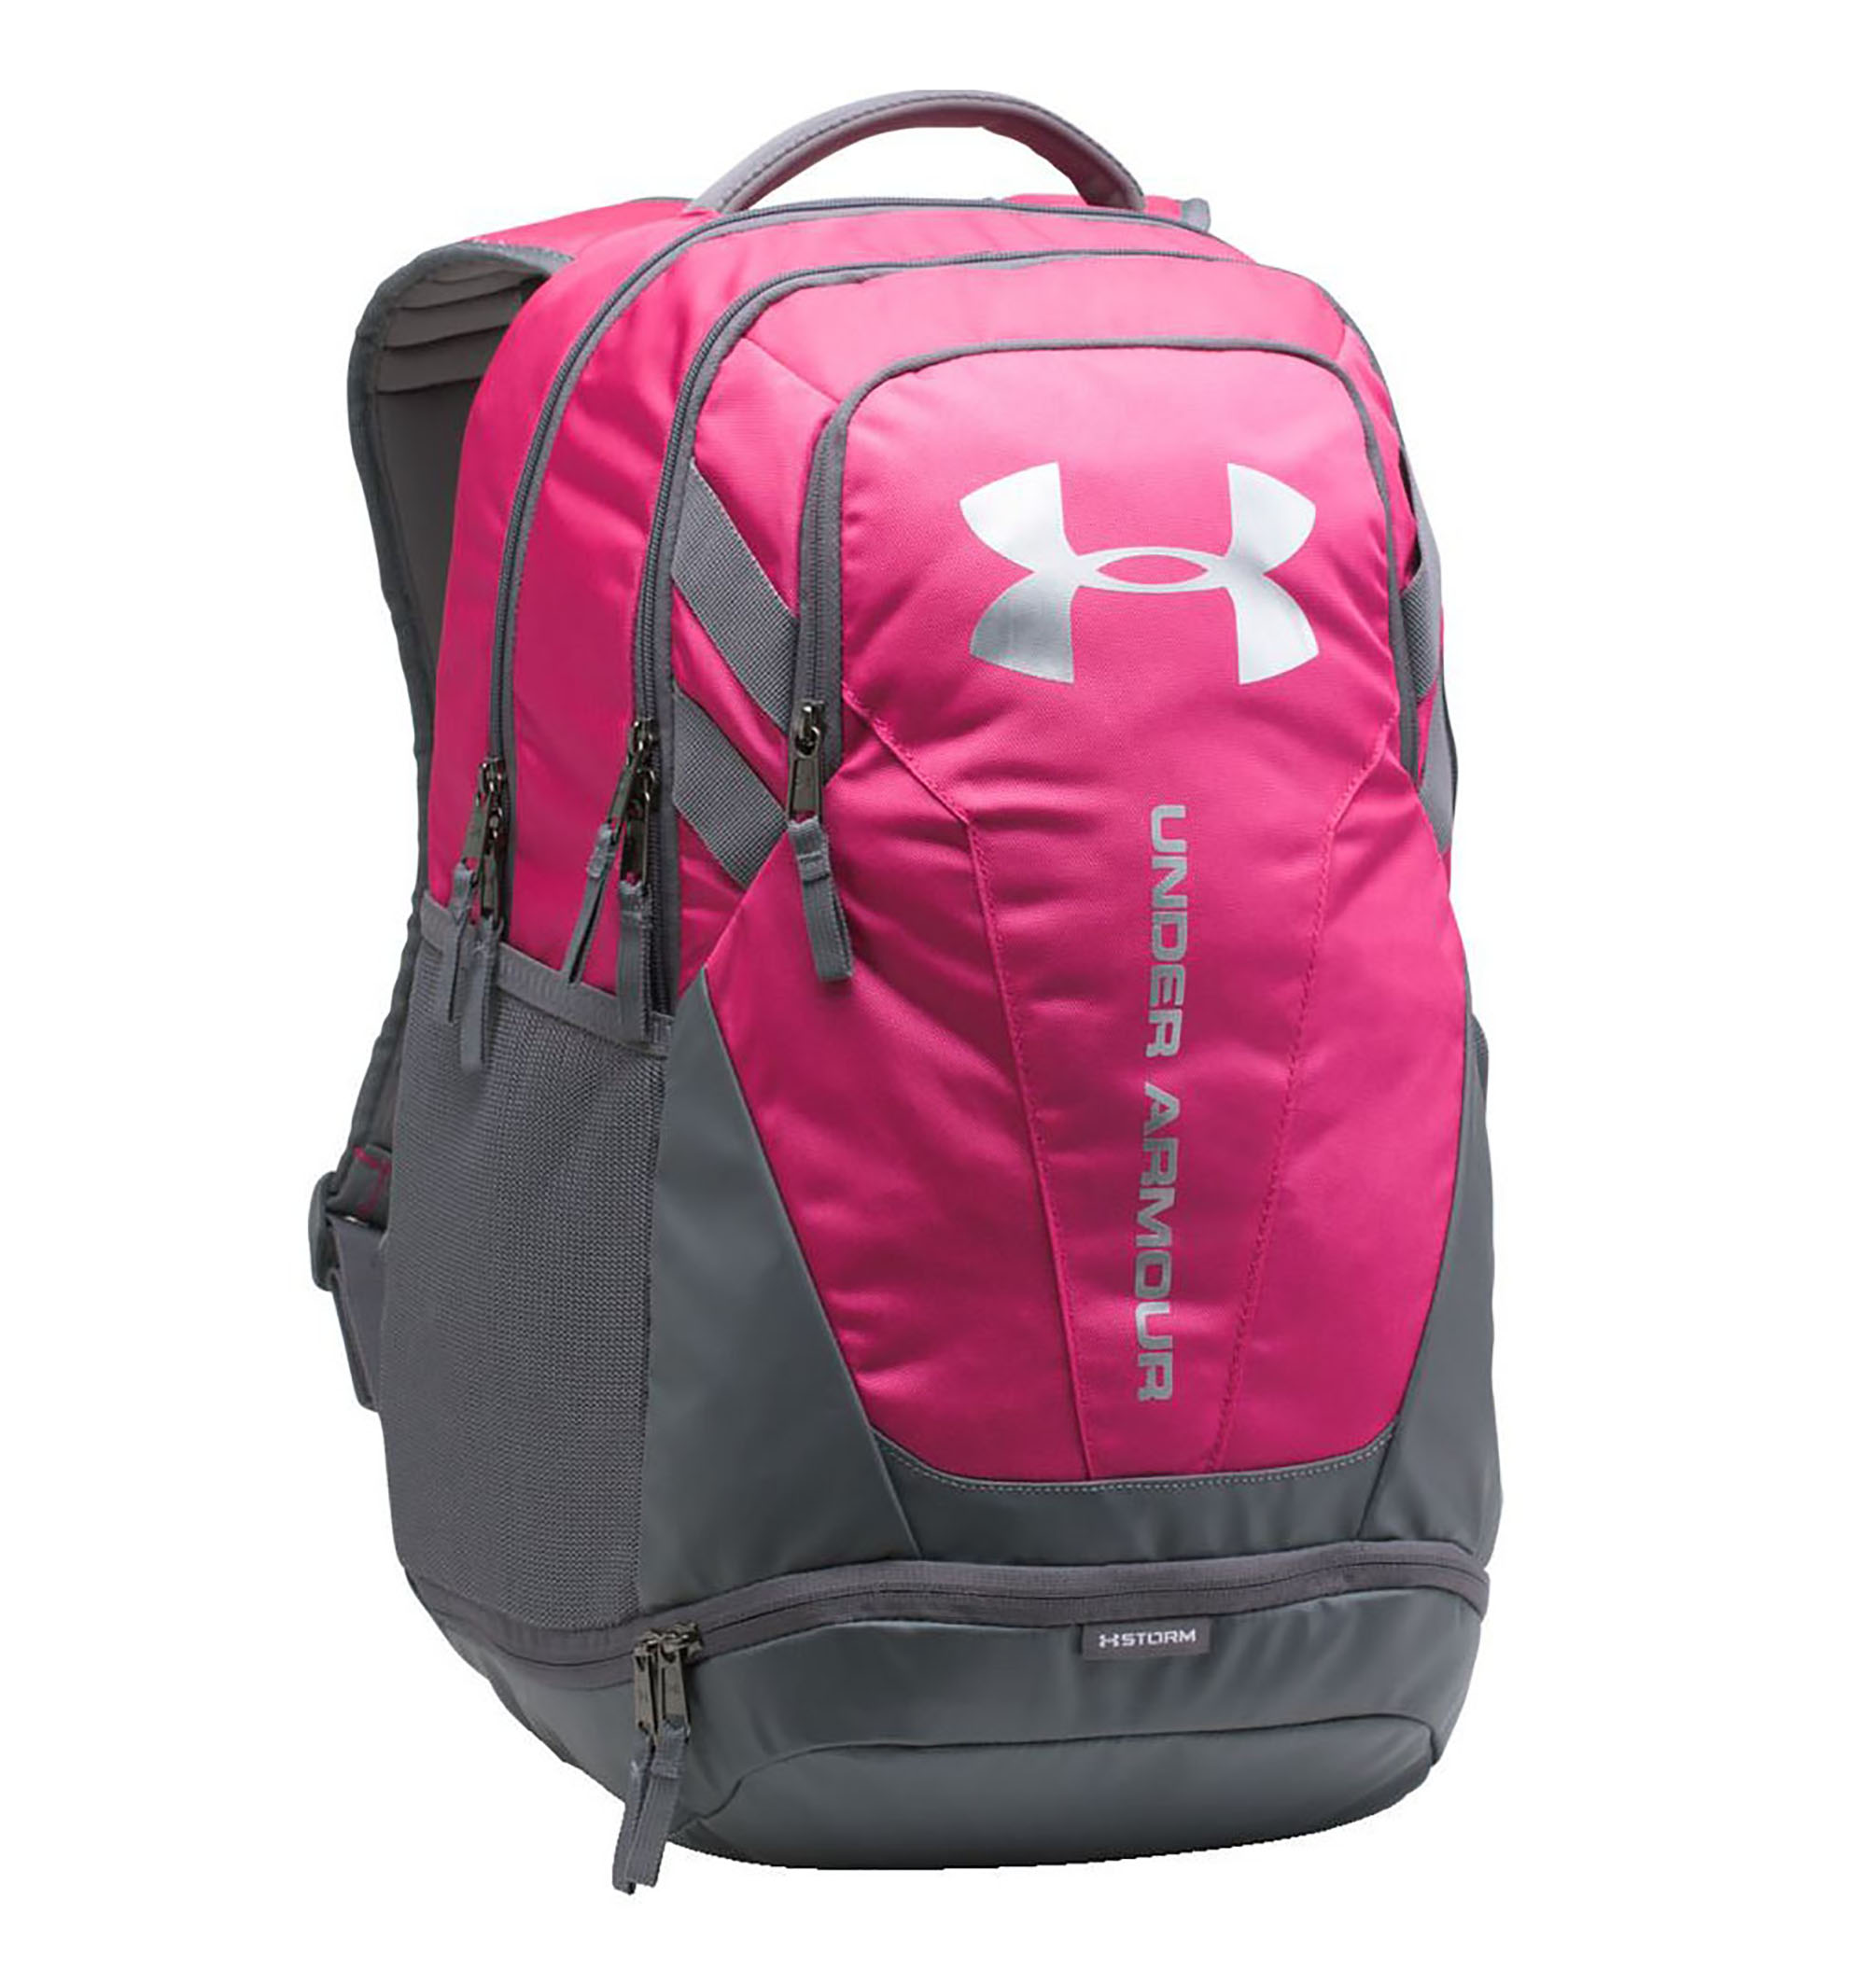 Under Armour Hustle 3.0 Backpack Tropic Pink/Graphite/Silver